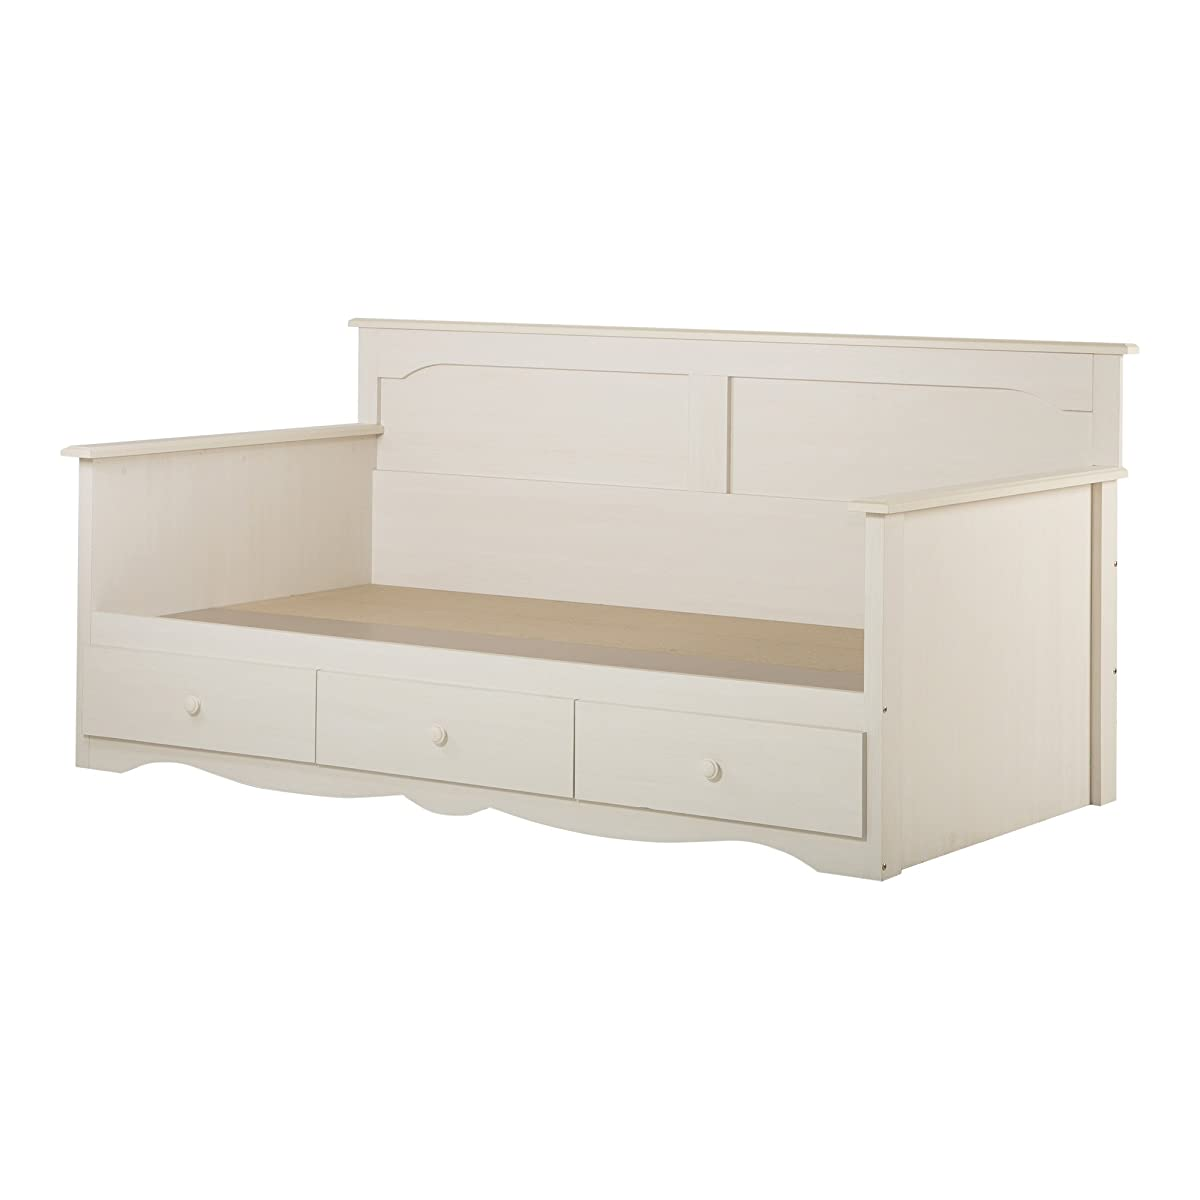 South Shore Summer Breeze Twin Daybed with Storage, 39-Inch, White Wash